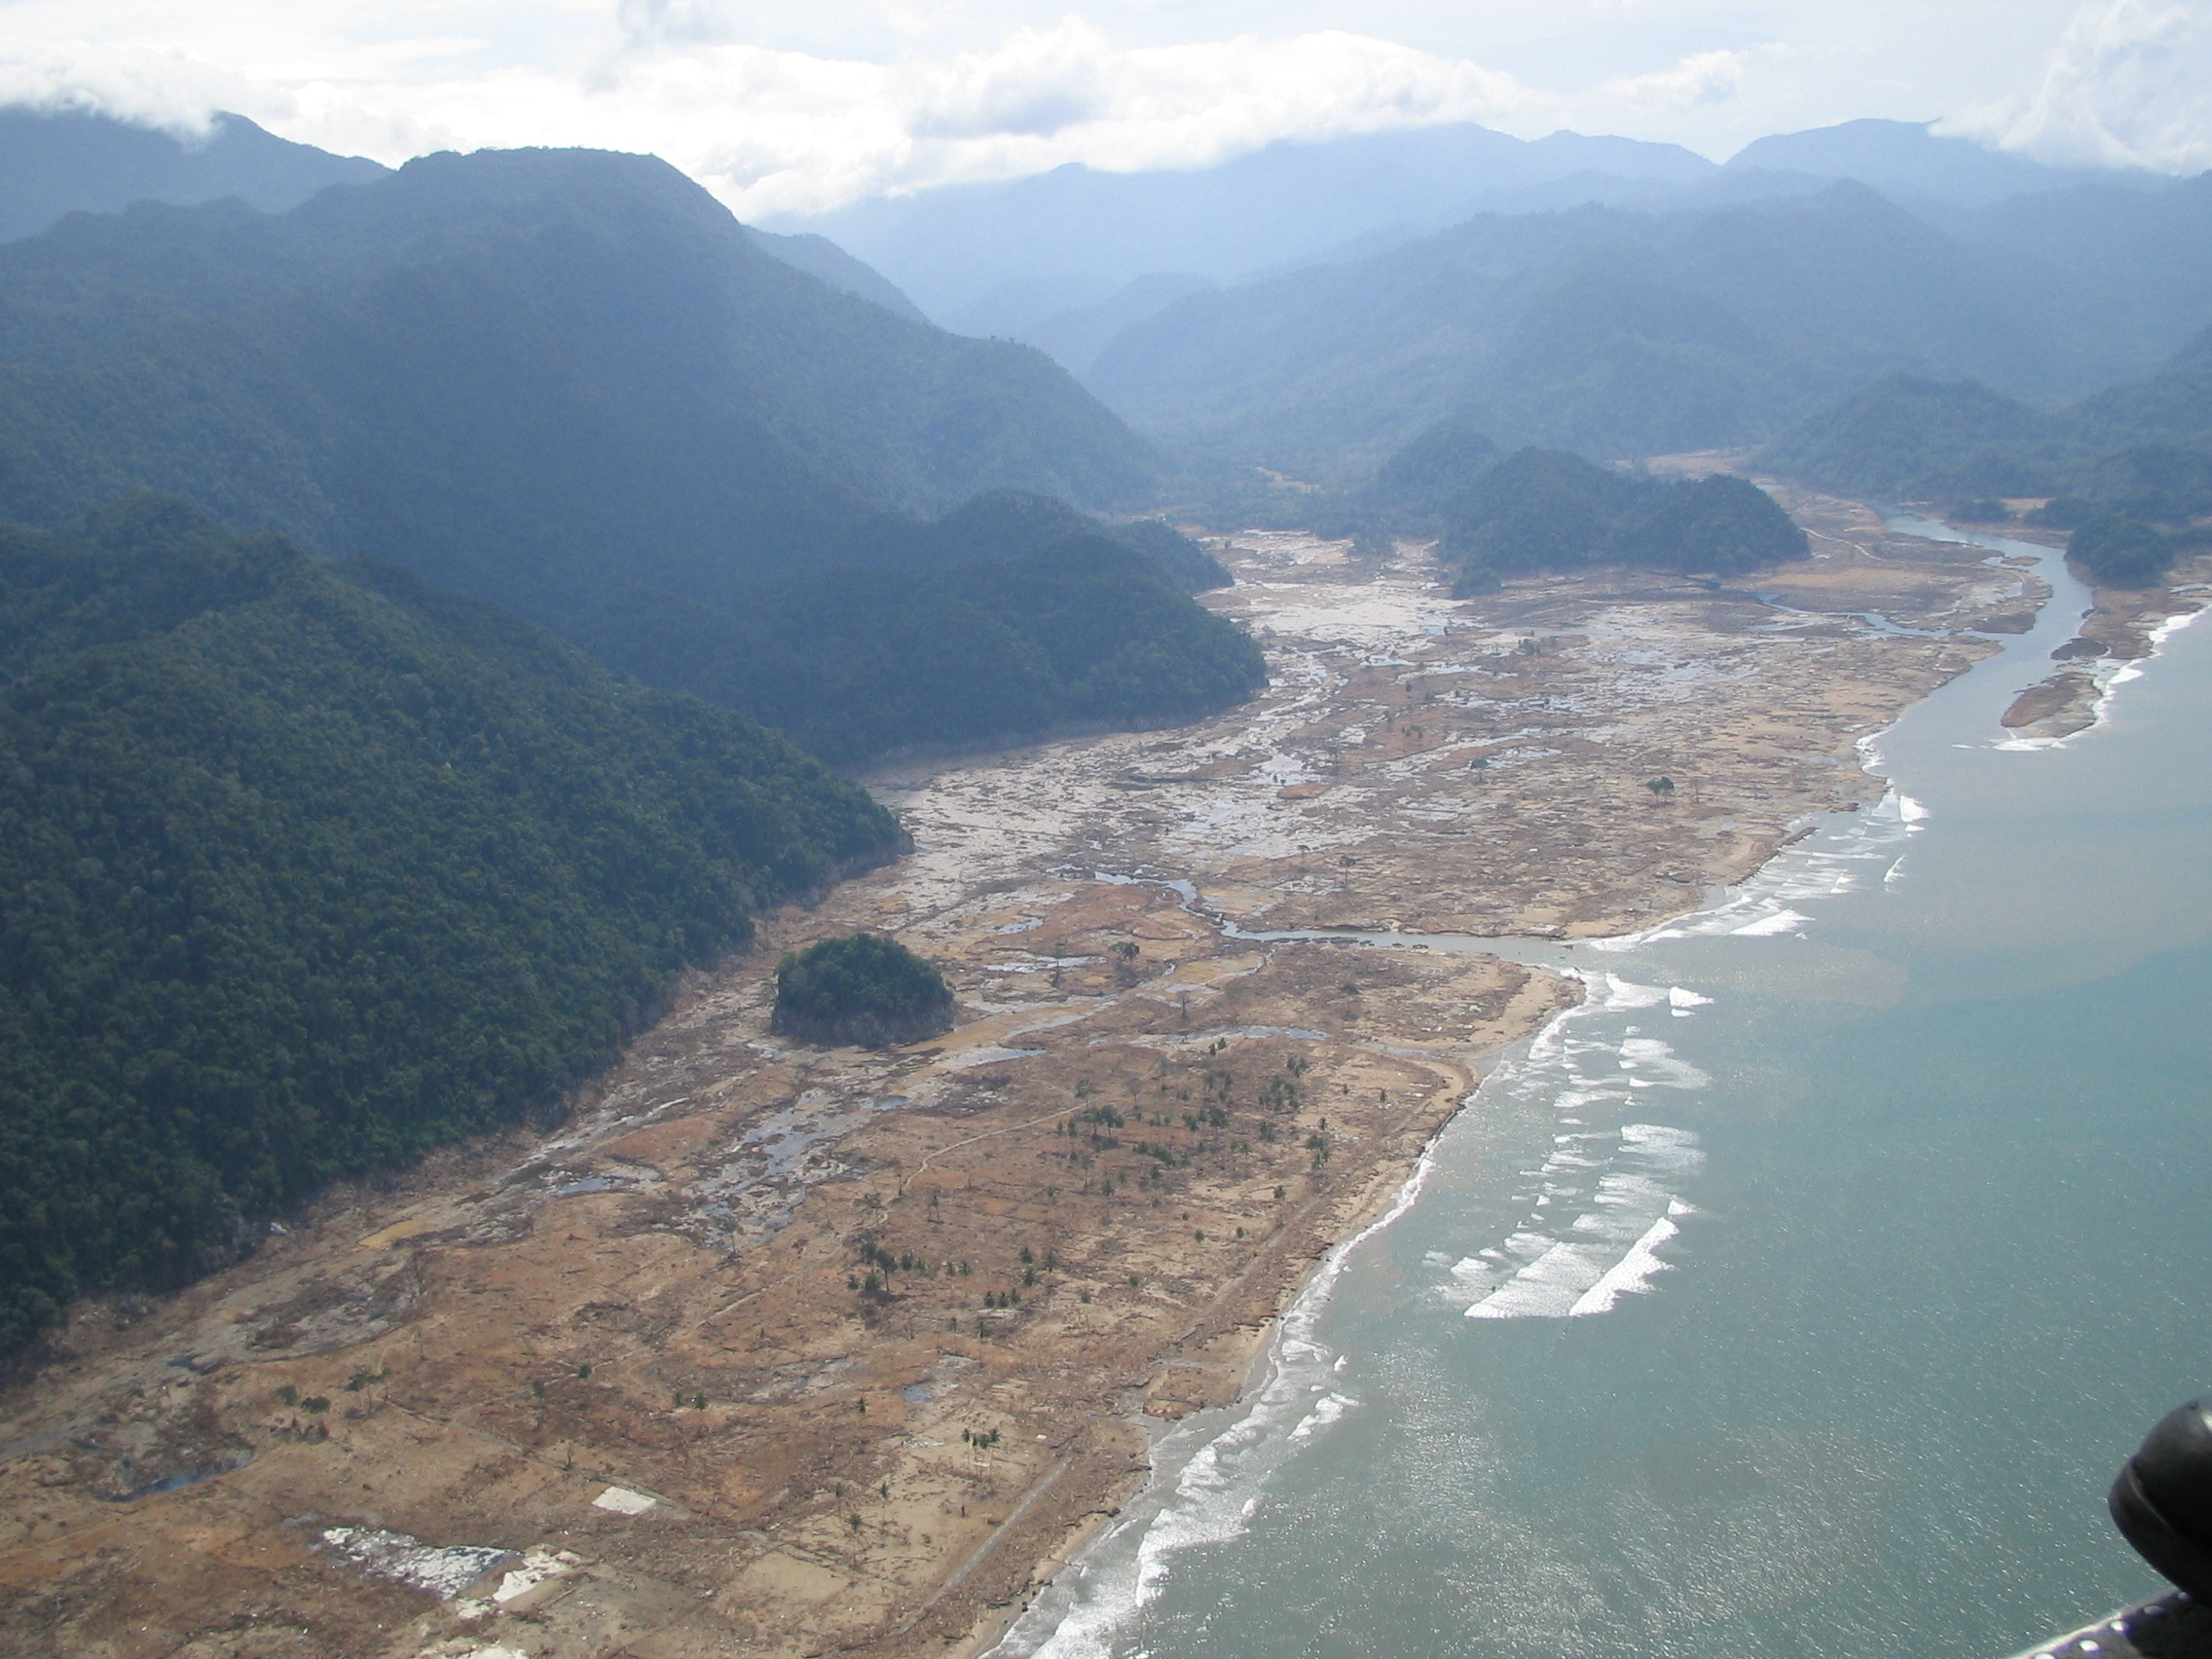 https://upload.wikimedia.org/wikipedia/commons/4/44/Tsunami_2004_aftermath._Aceh%2C_Indonesia%2C_2005._Photo-_AusAID_%2810730863873%29.jpg